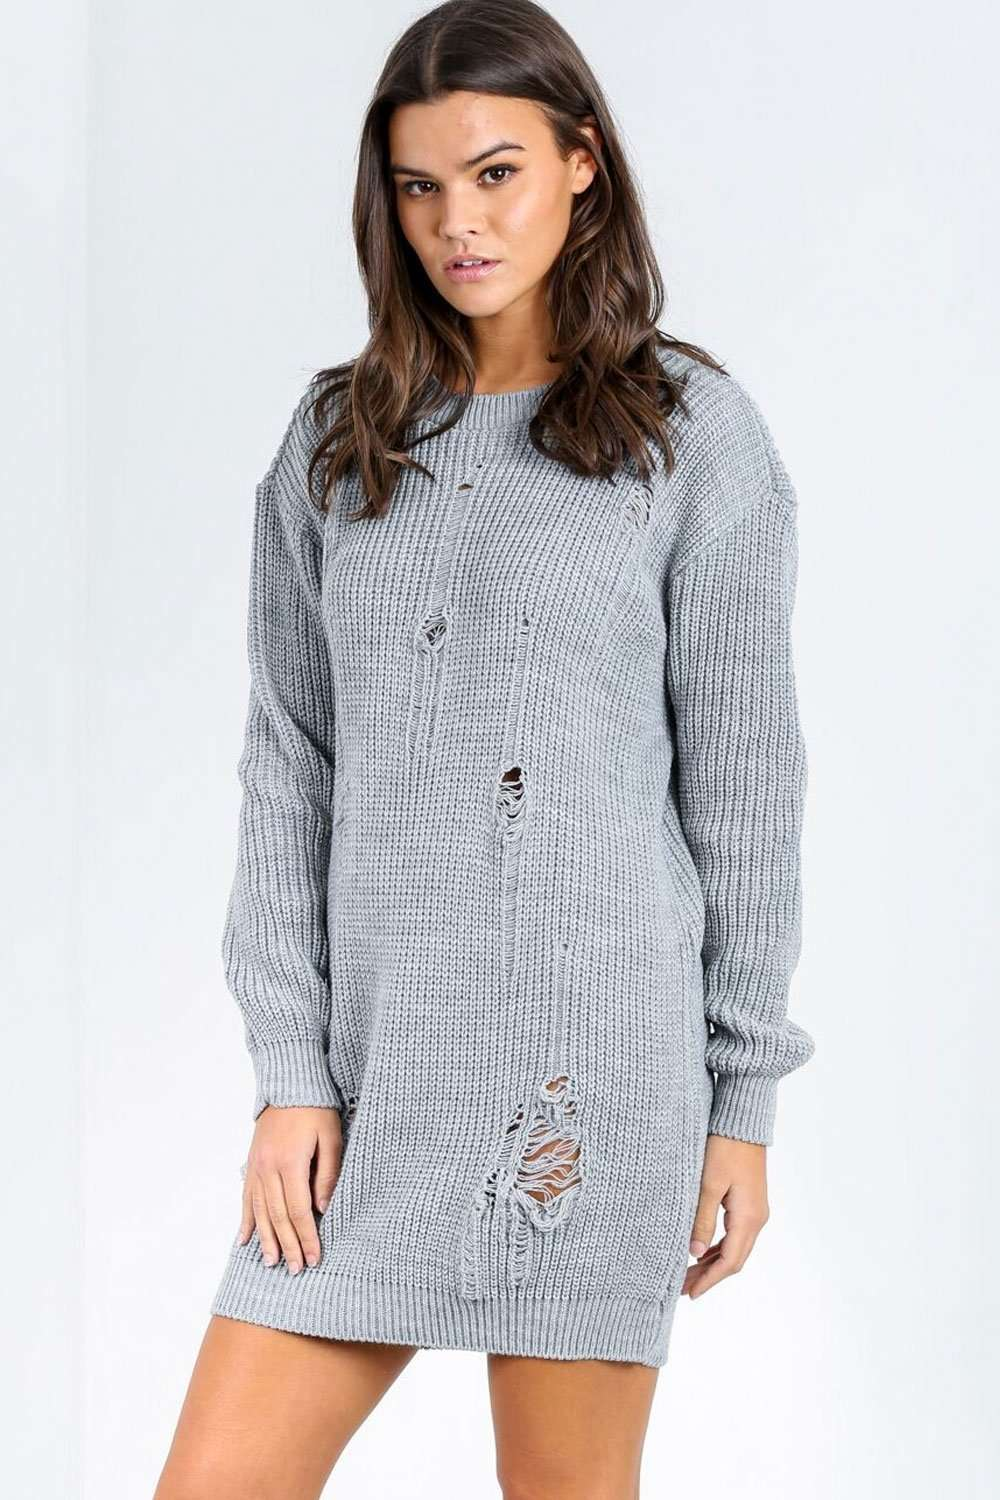 Avae Distressed Oversized Knitted Jumper Dress - bejealous-com